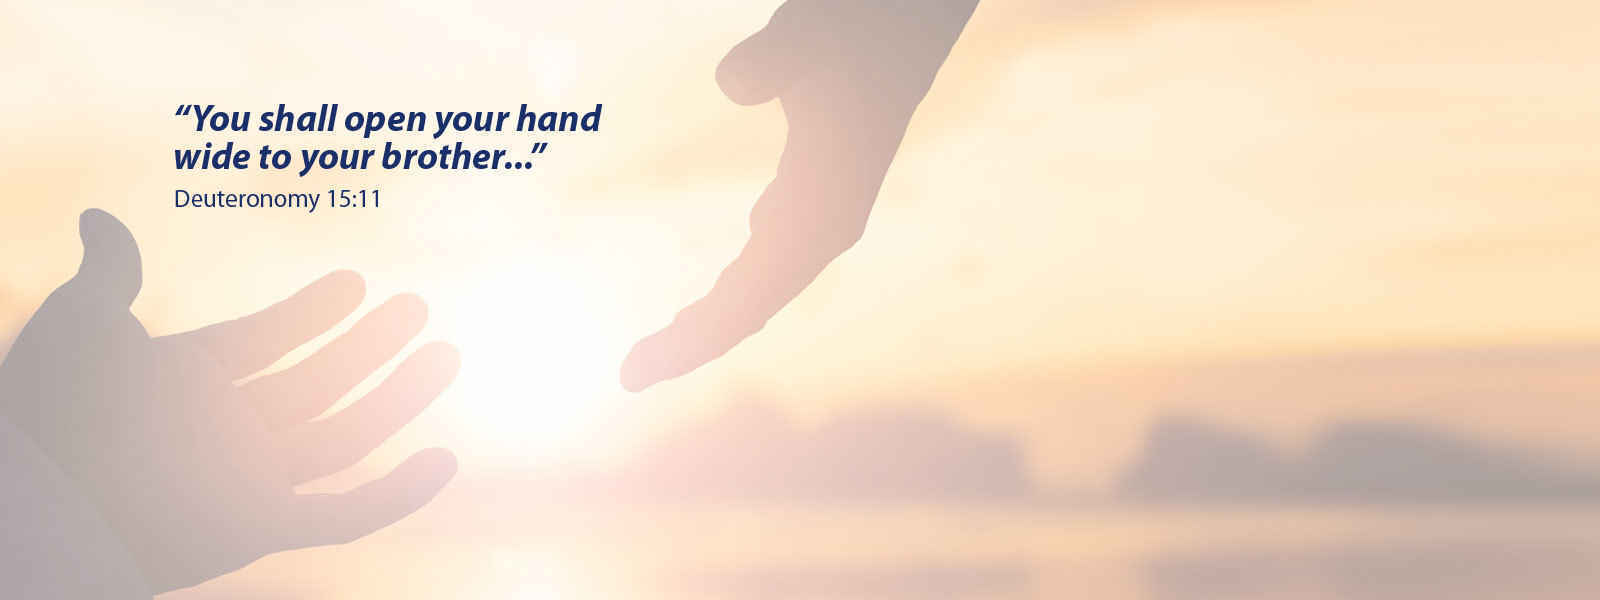 Start off 2021 with an act of kindness; give someone a Helping Hand. image